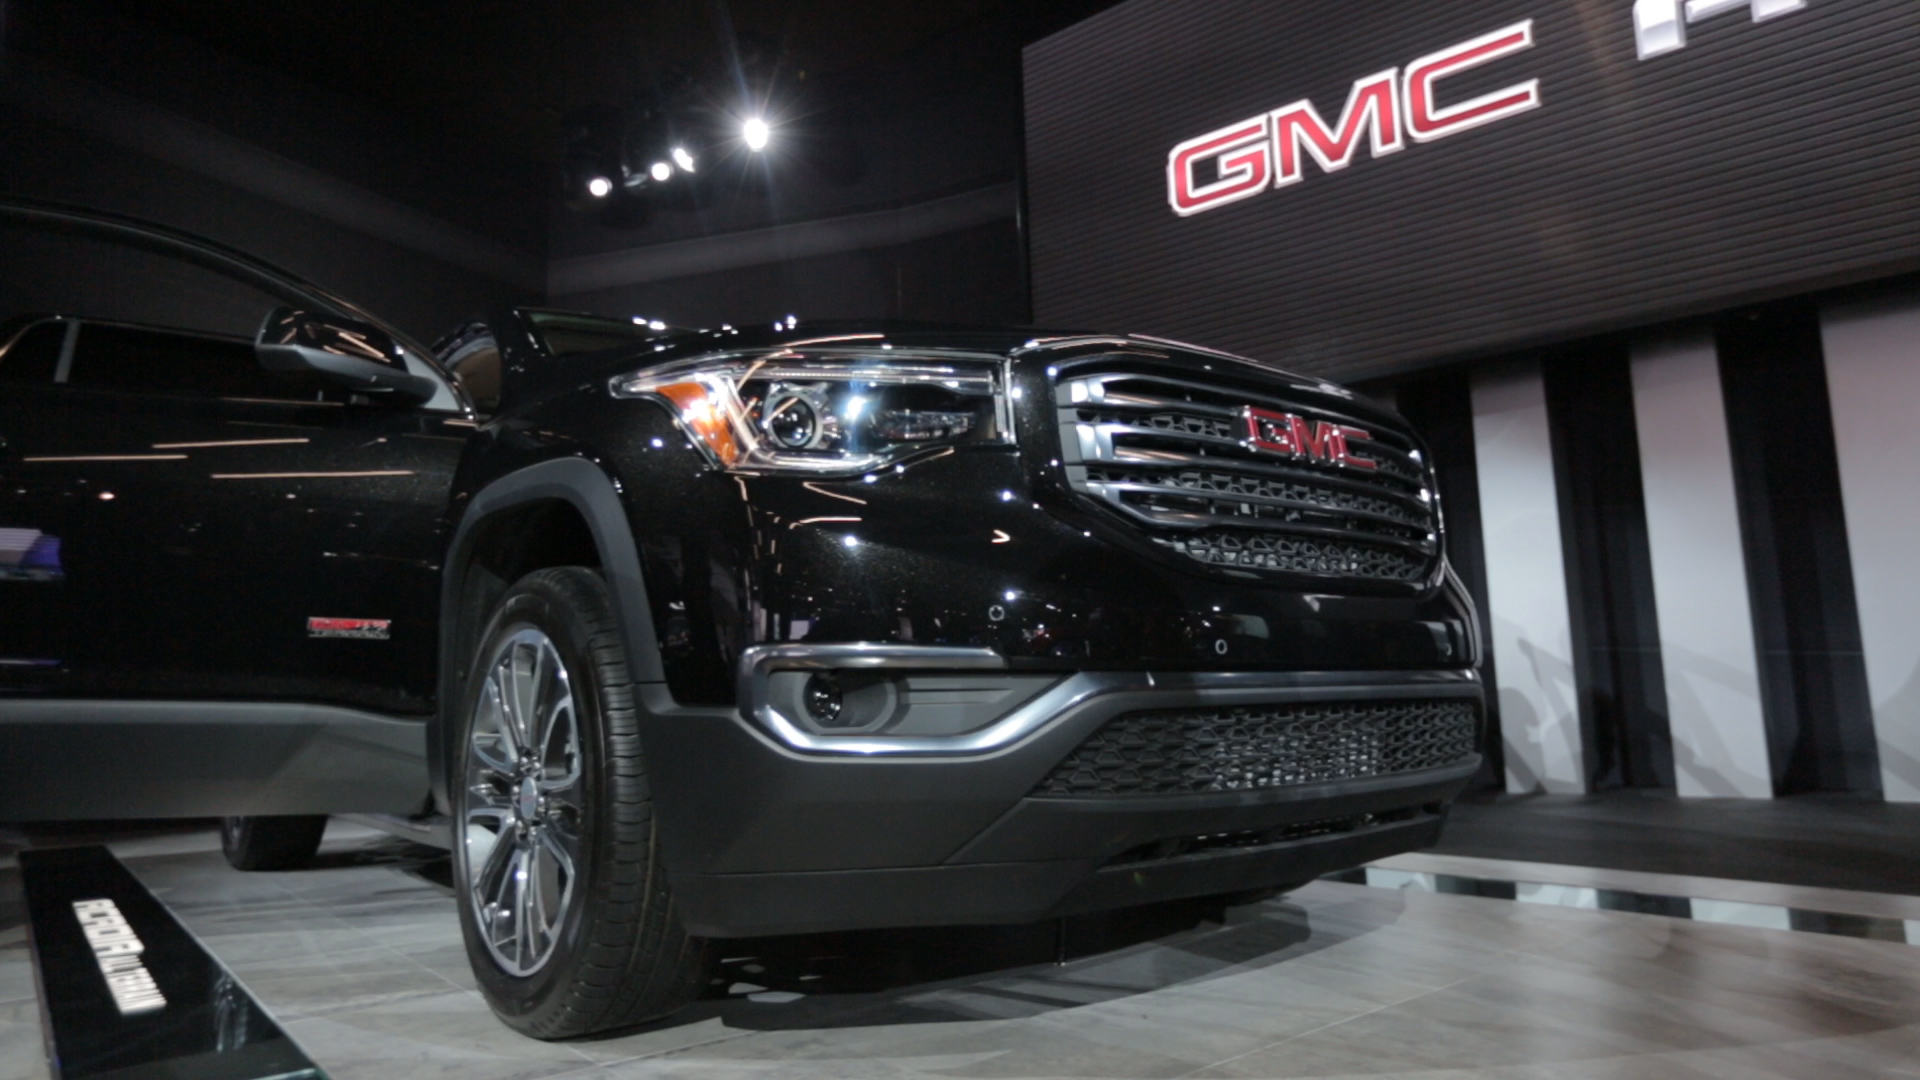 Video: GMC shows a lightened up Acadia